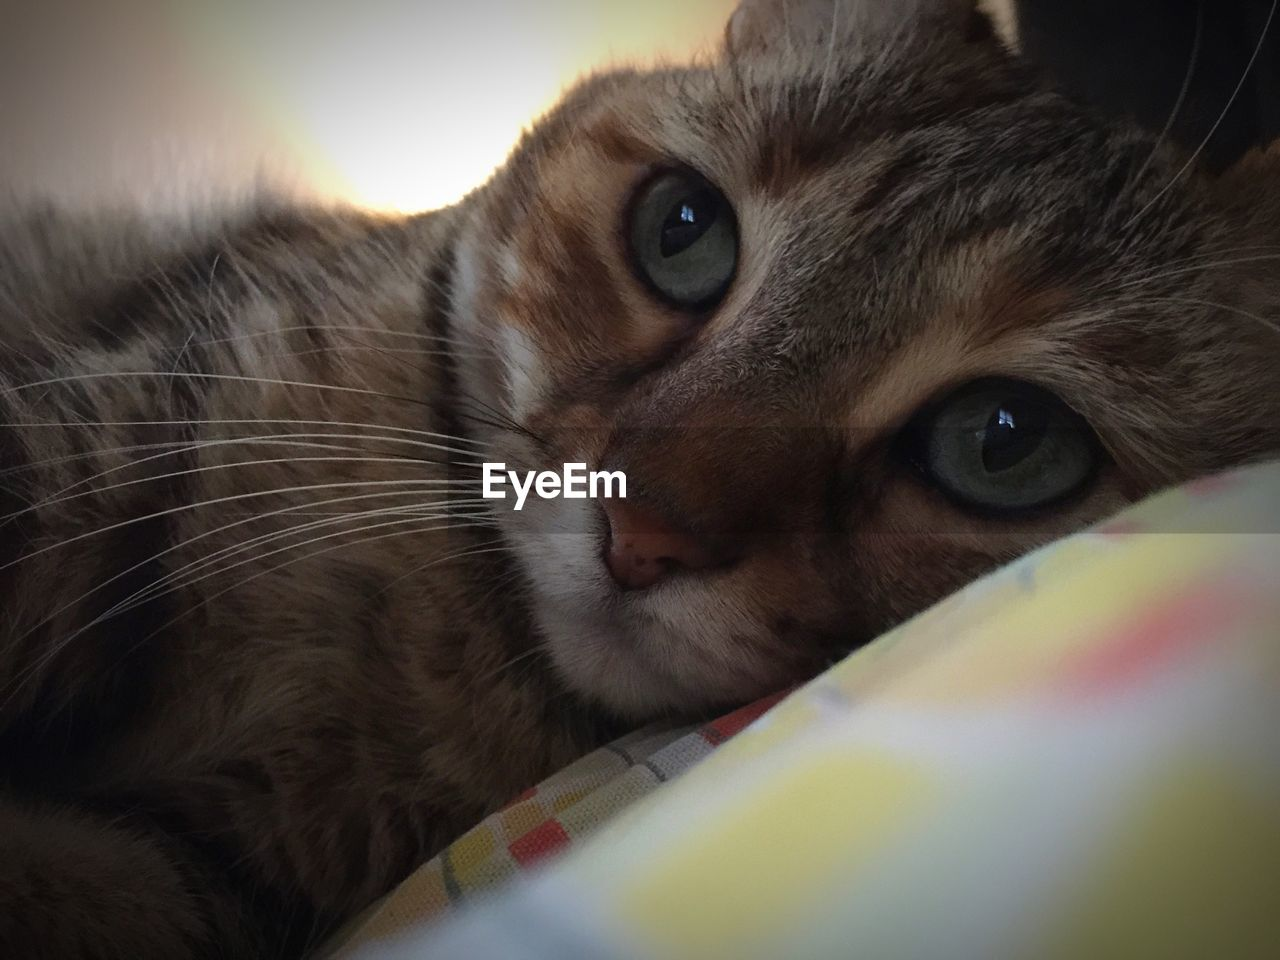 pets, one animal, domestic cat, domestic animals, animal themes, mammal, looking at camera, whisker, feline, indoors, close-up, portrait, no people, day